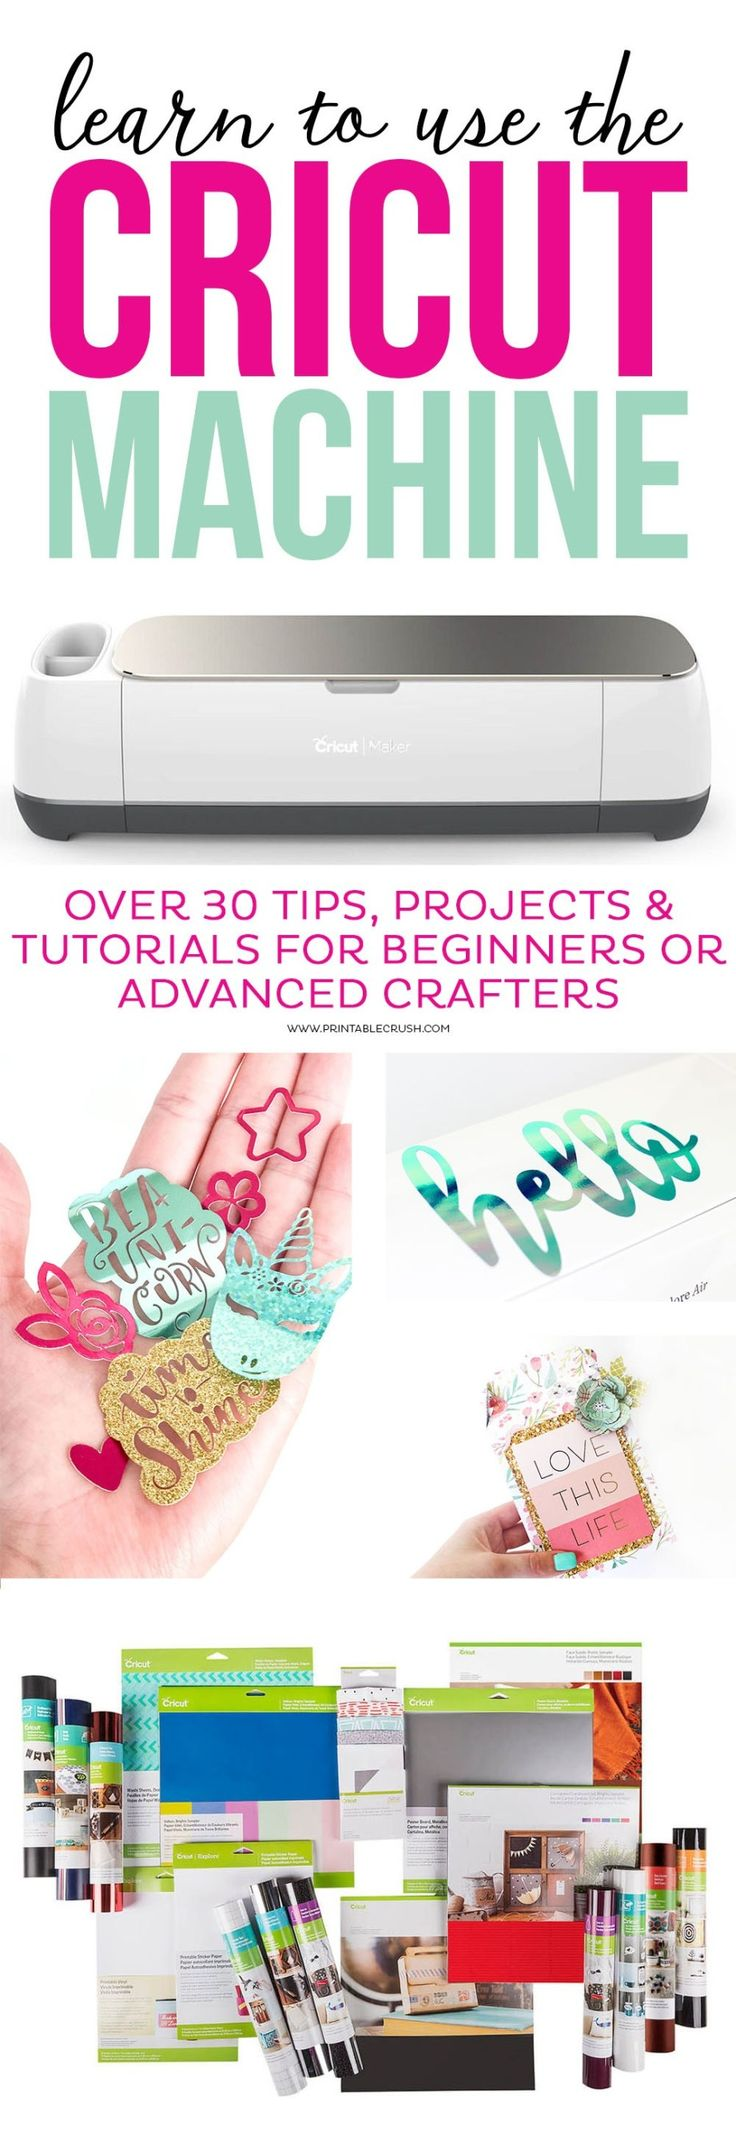 Learn to use the Cricut Machine with over 30 tips